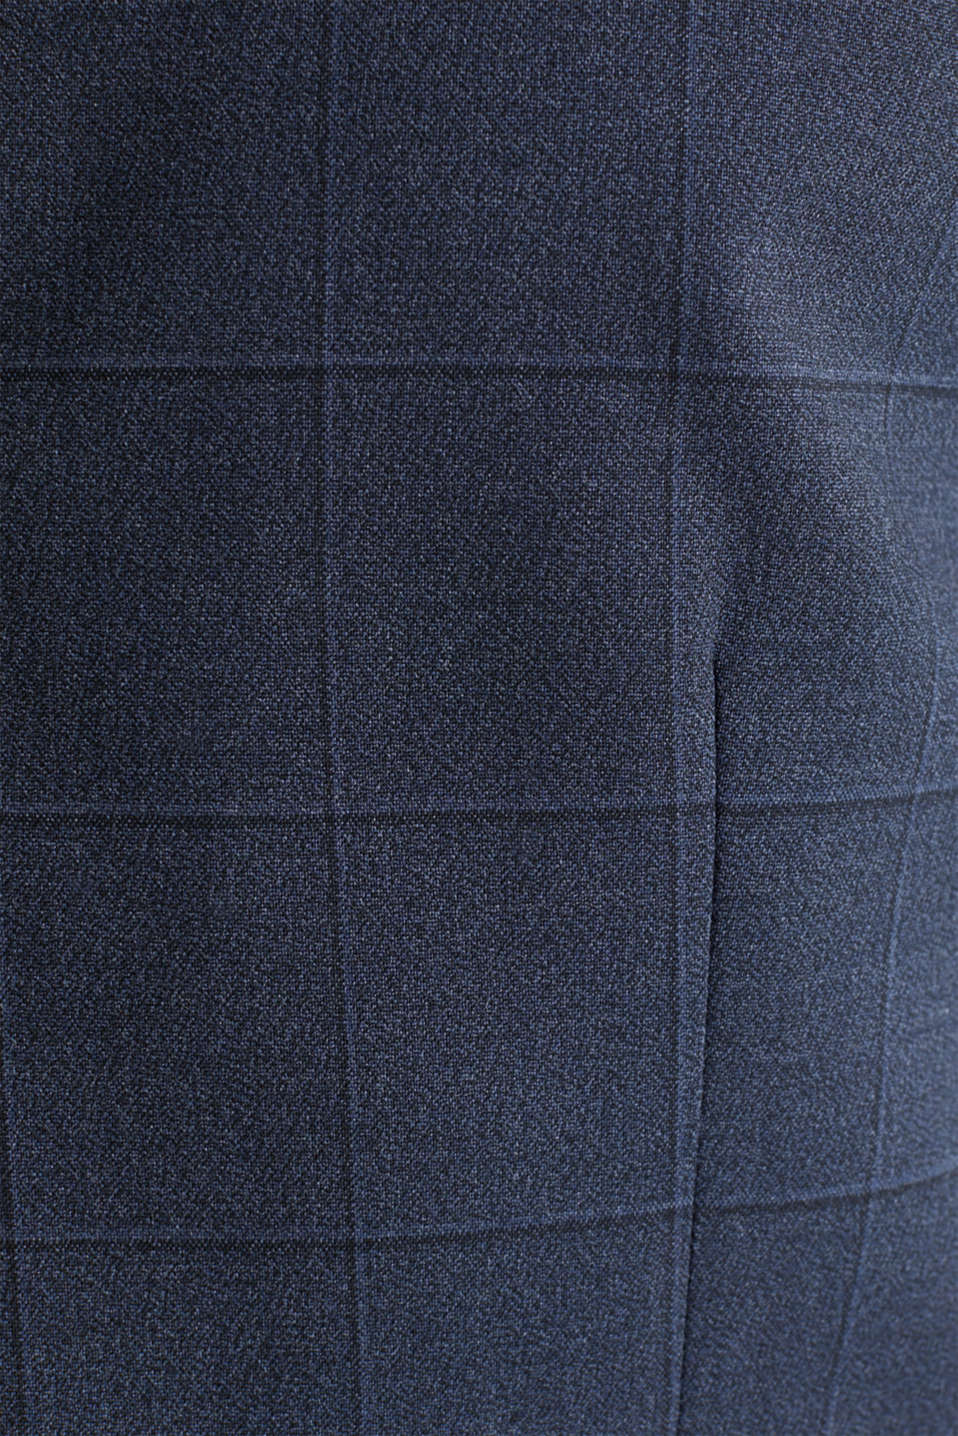 WINDOW CHECK mix + match: waistcoat, DARK BLUE 3, detail image number 5